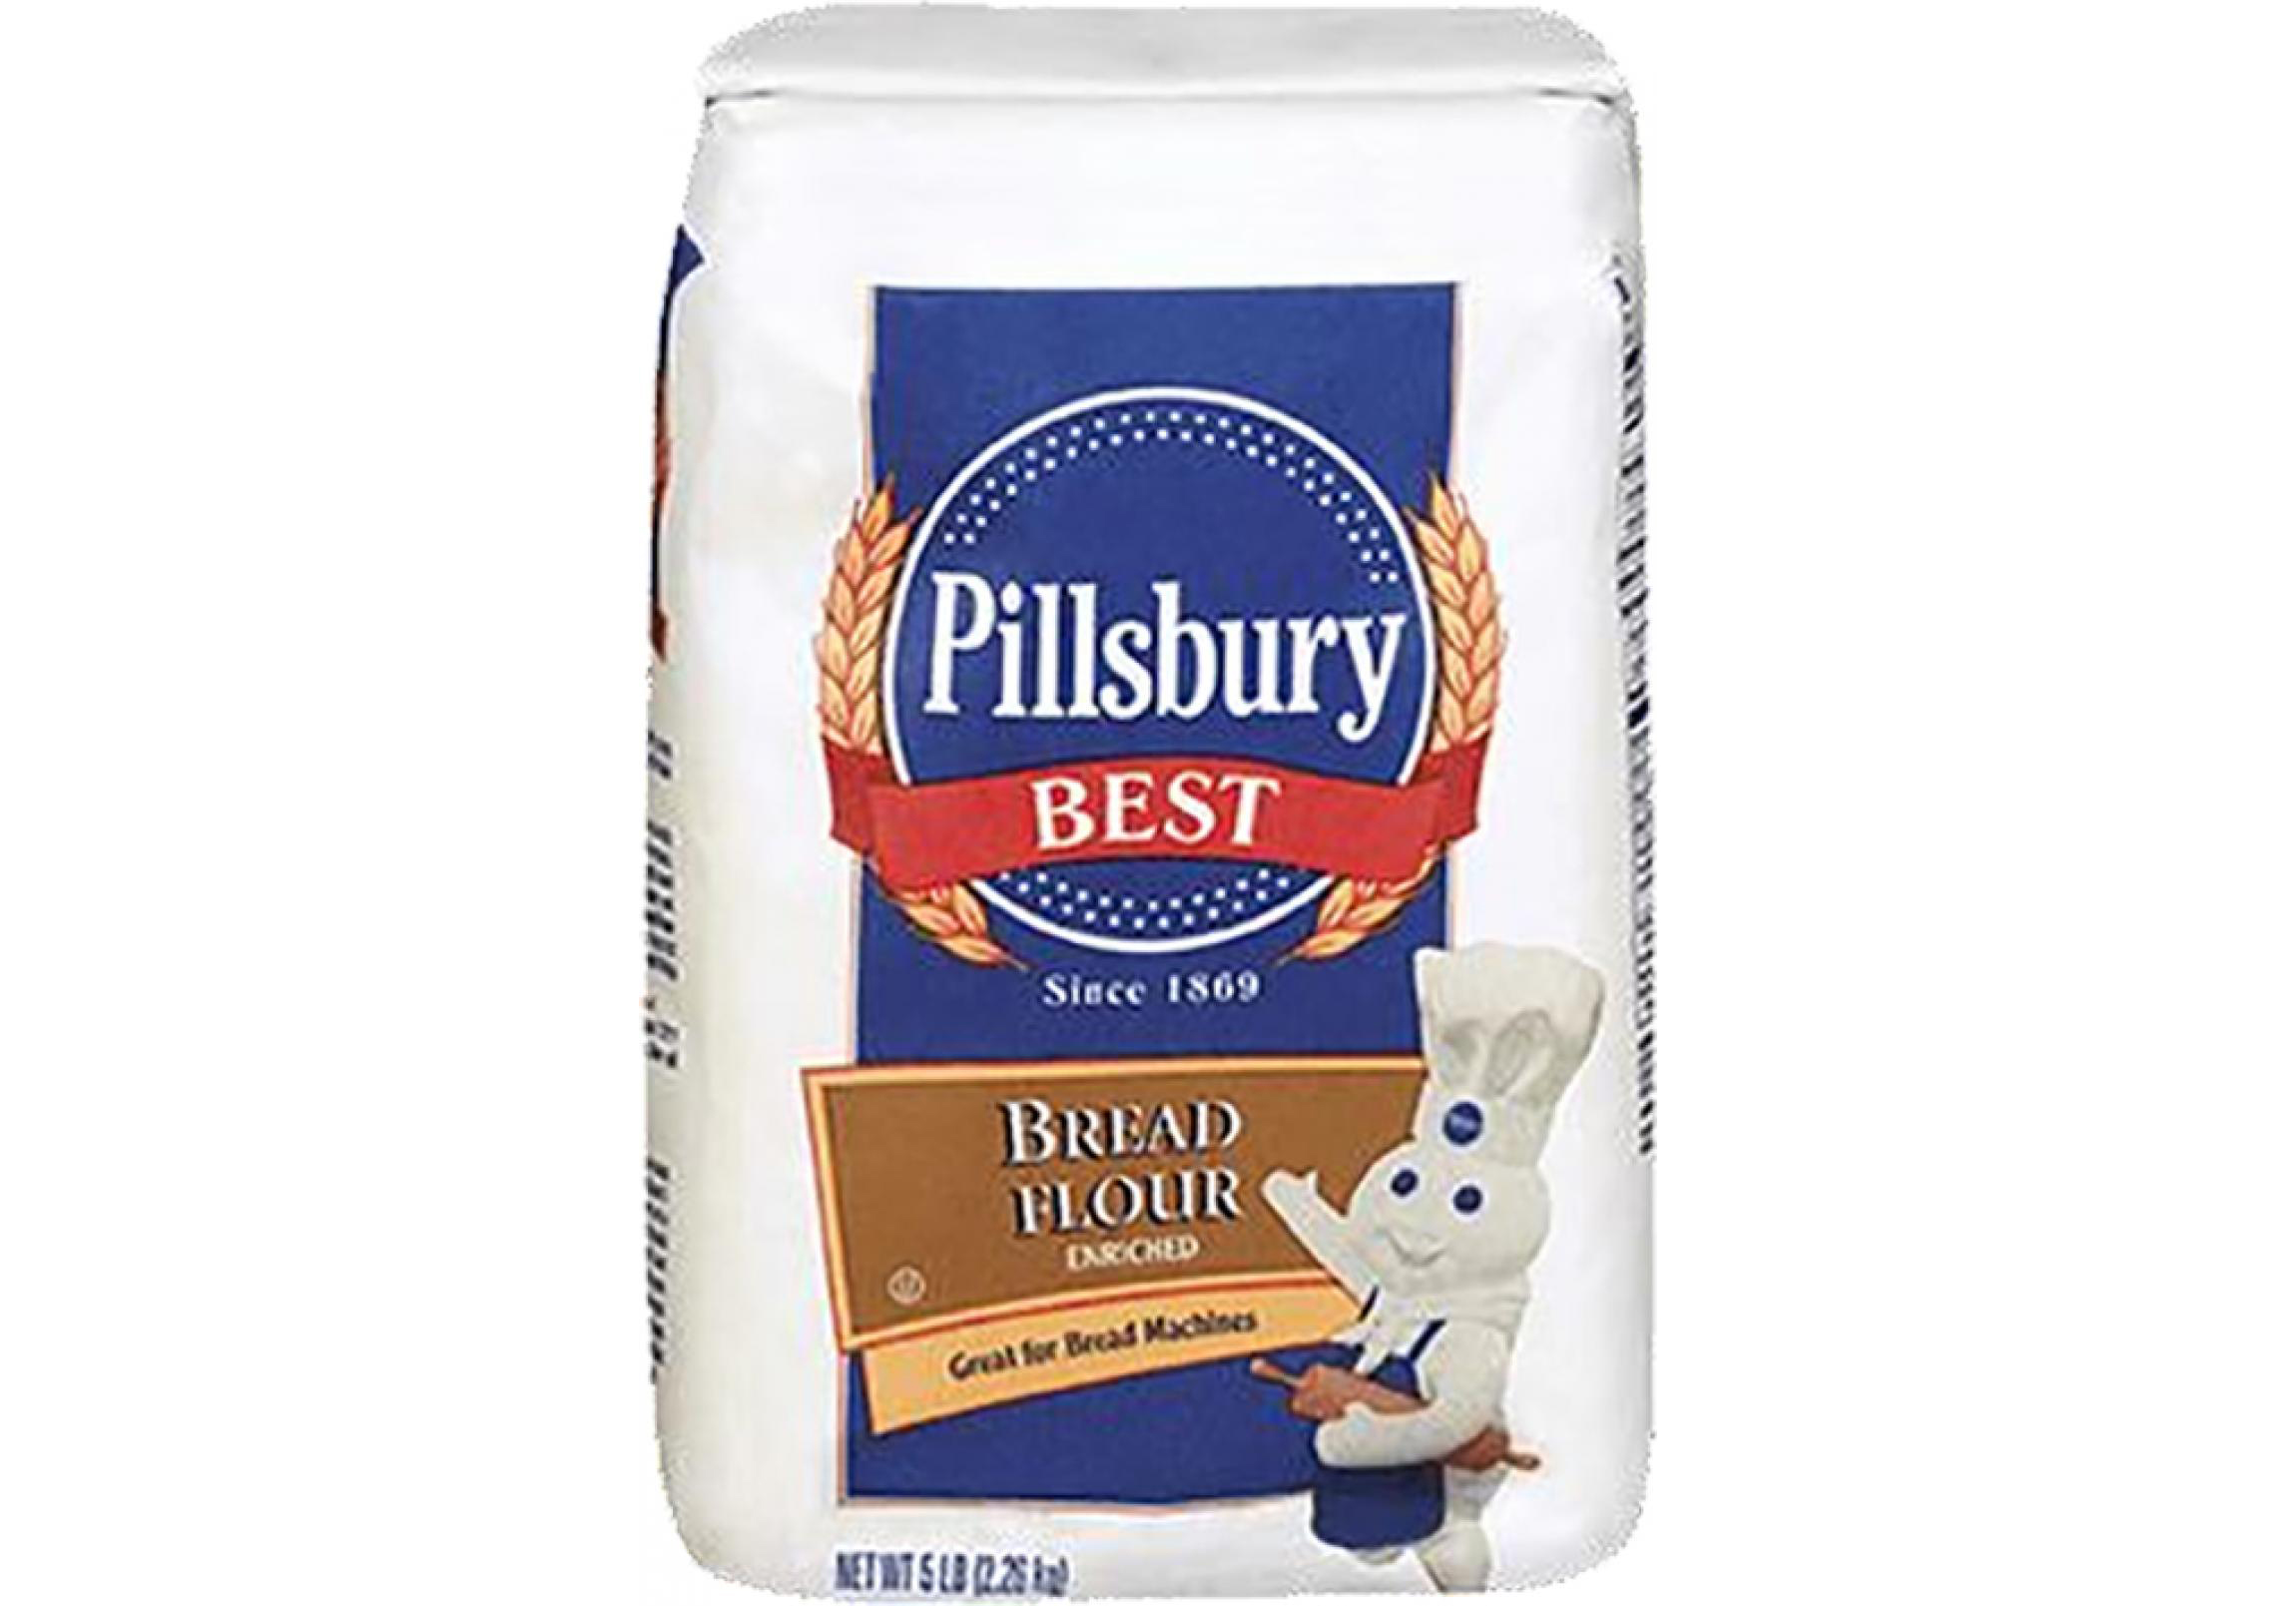 Pillsbury flour recalled as E. coli outbreak concerns spread to 3rd brand made at N.Y. mill